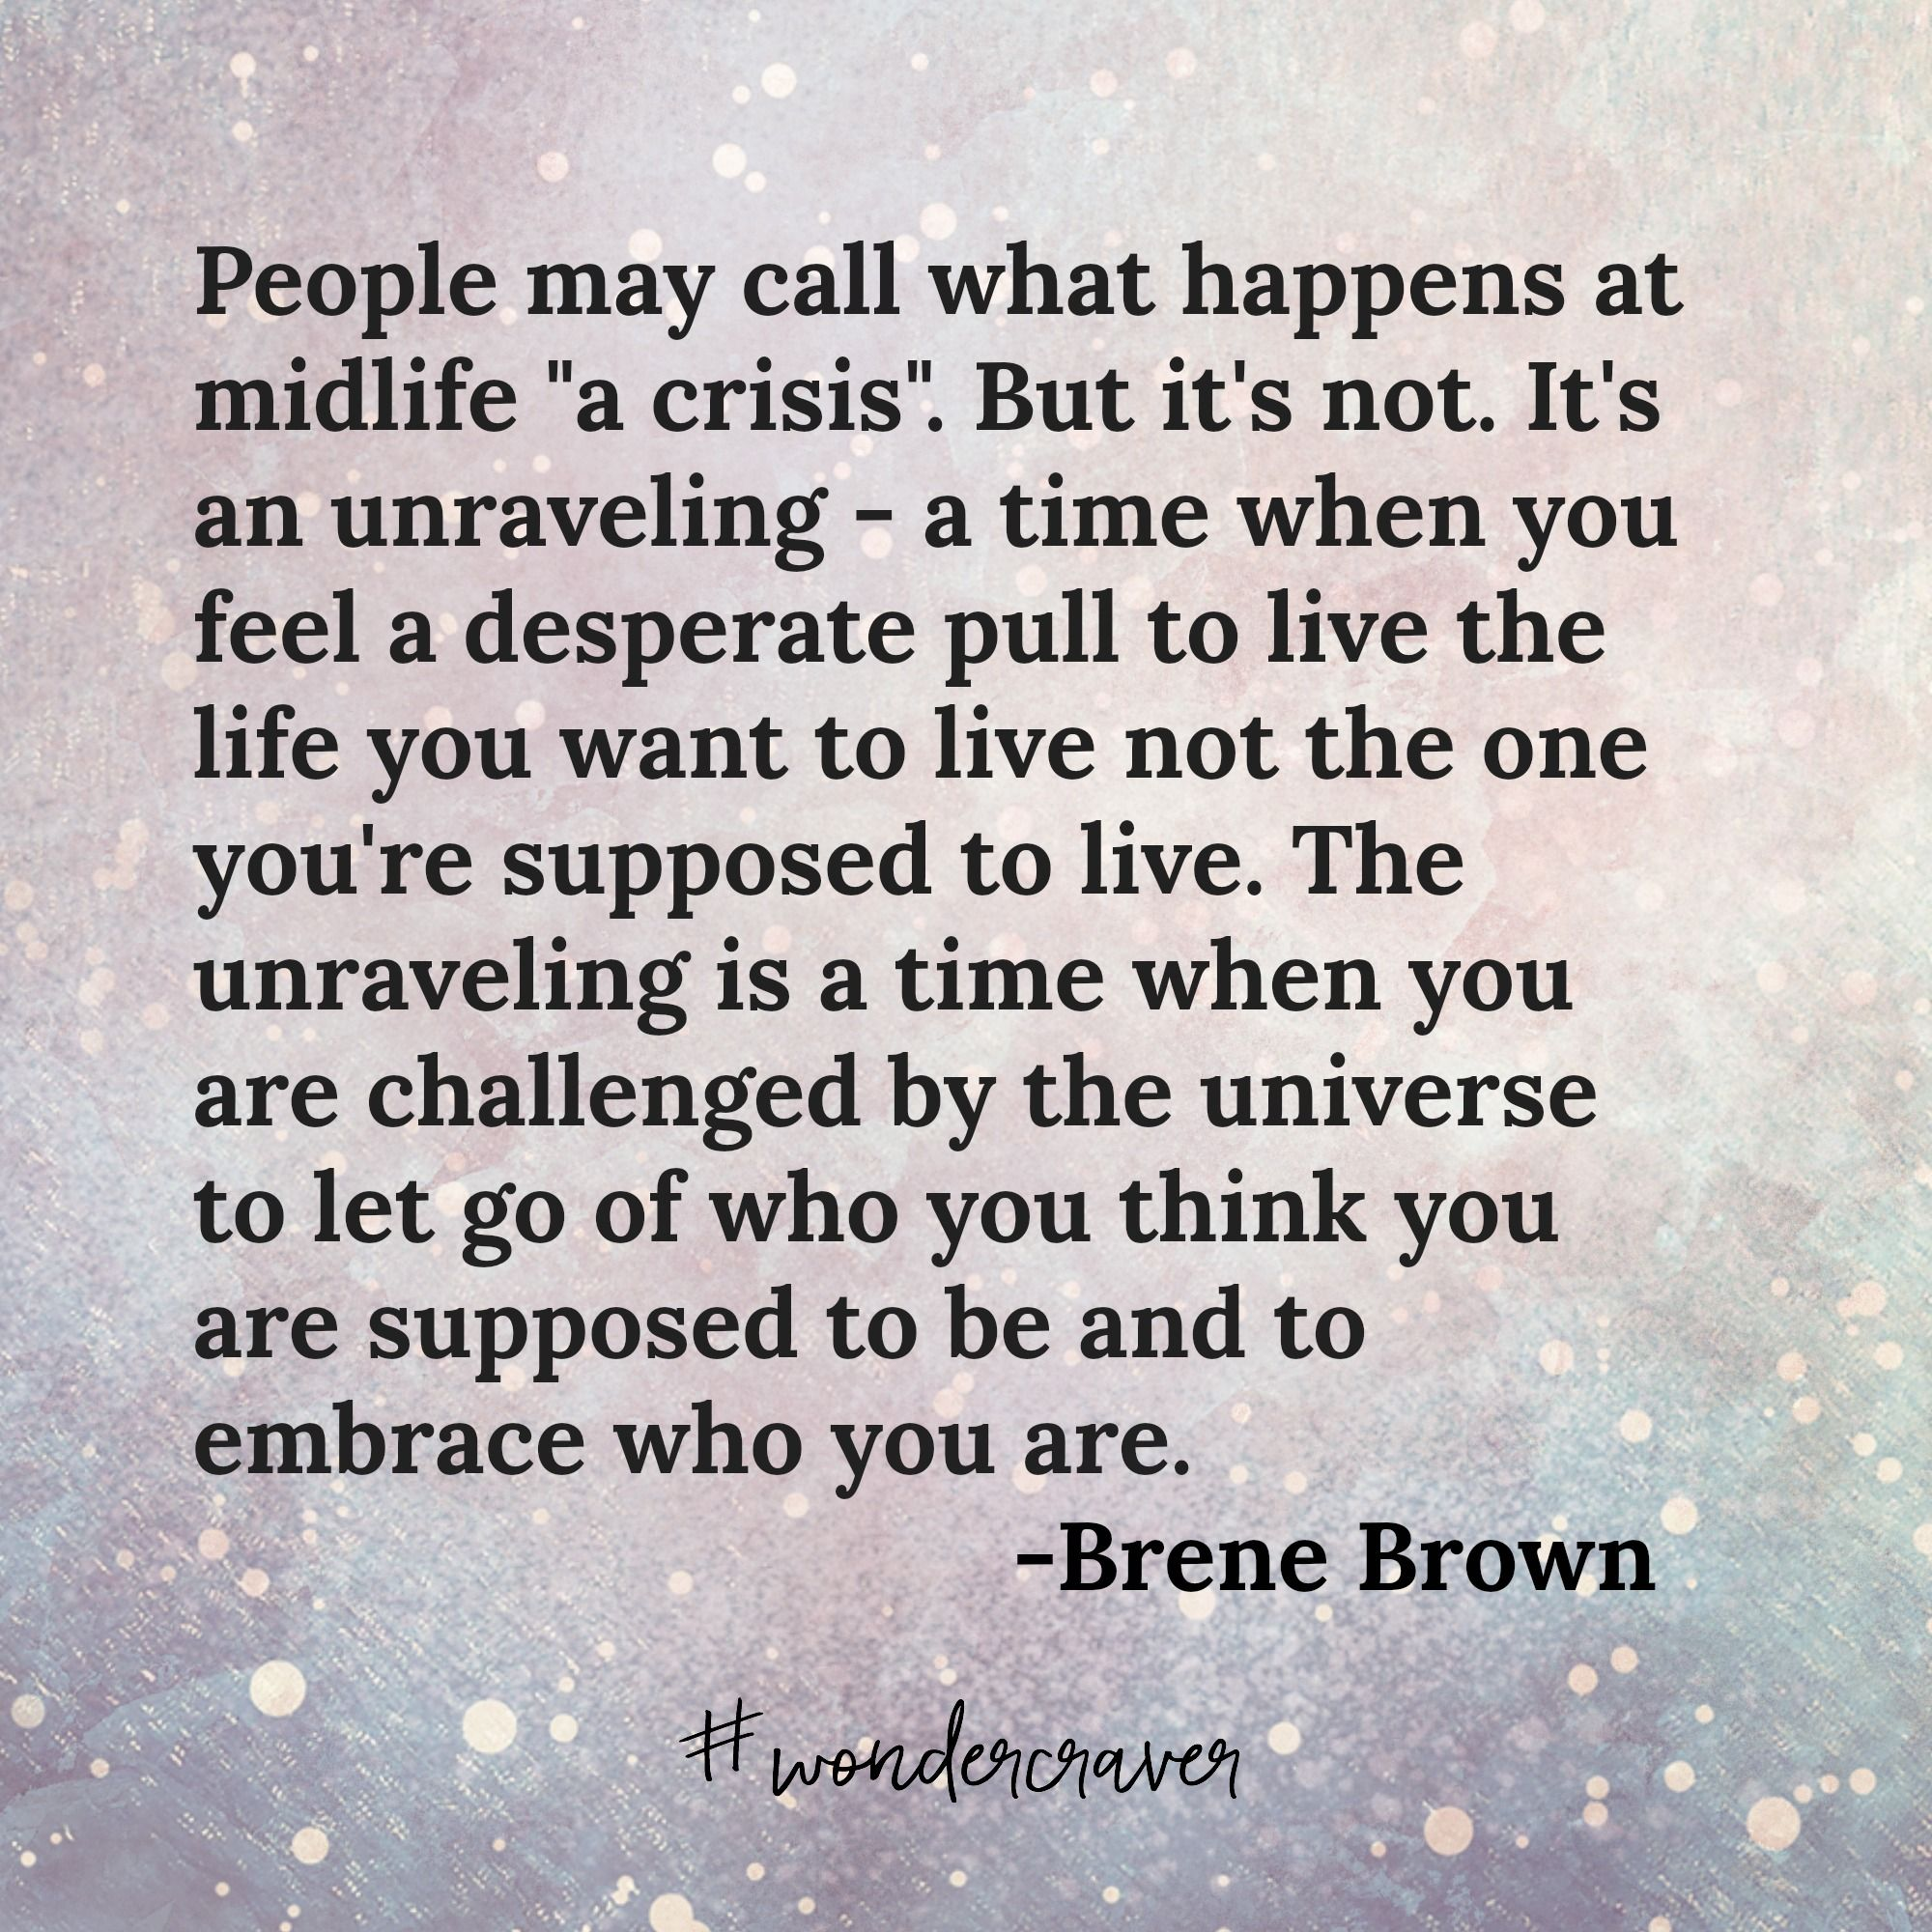 The Neverending Story My Extended Remix Of A Midlife Crisis Wonder Craver Brene Brown Quotes Midlife Crisis Quotes Empowering Quotes